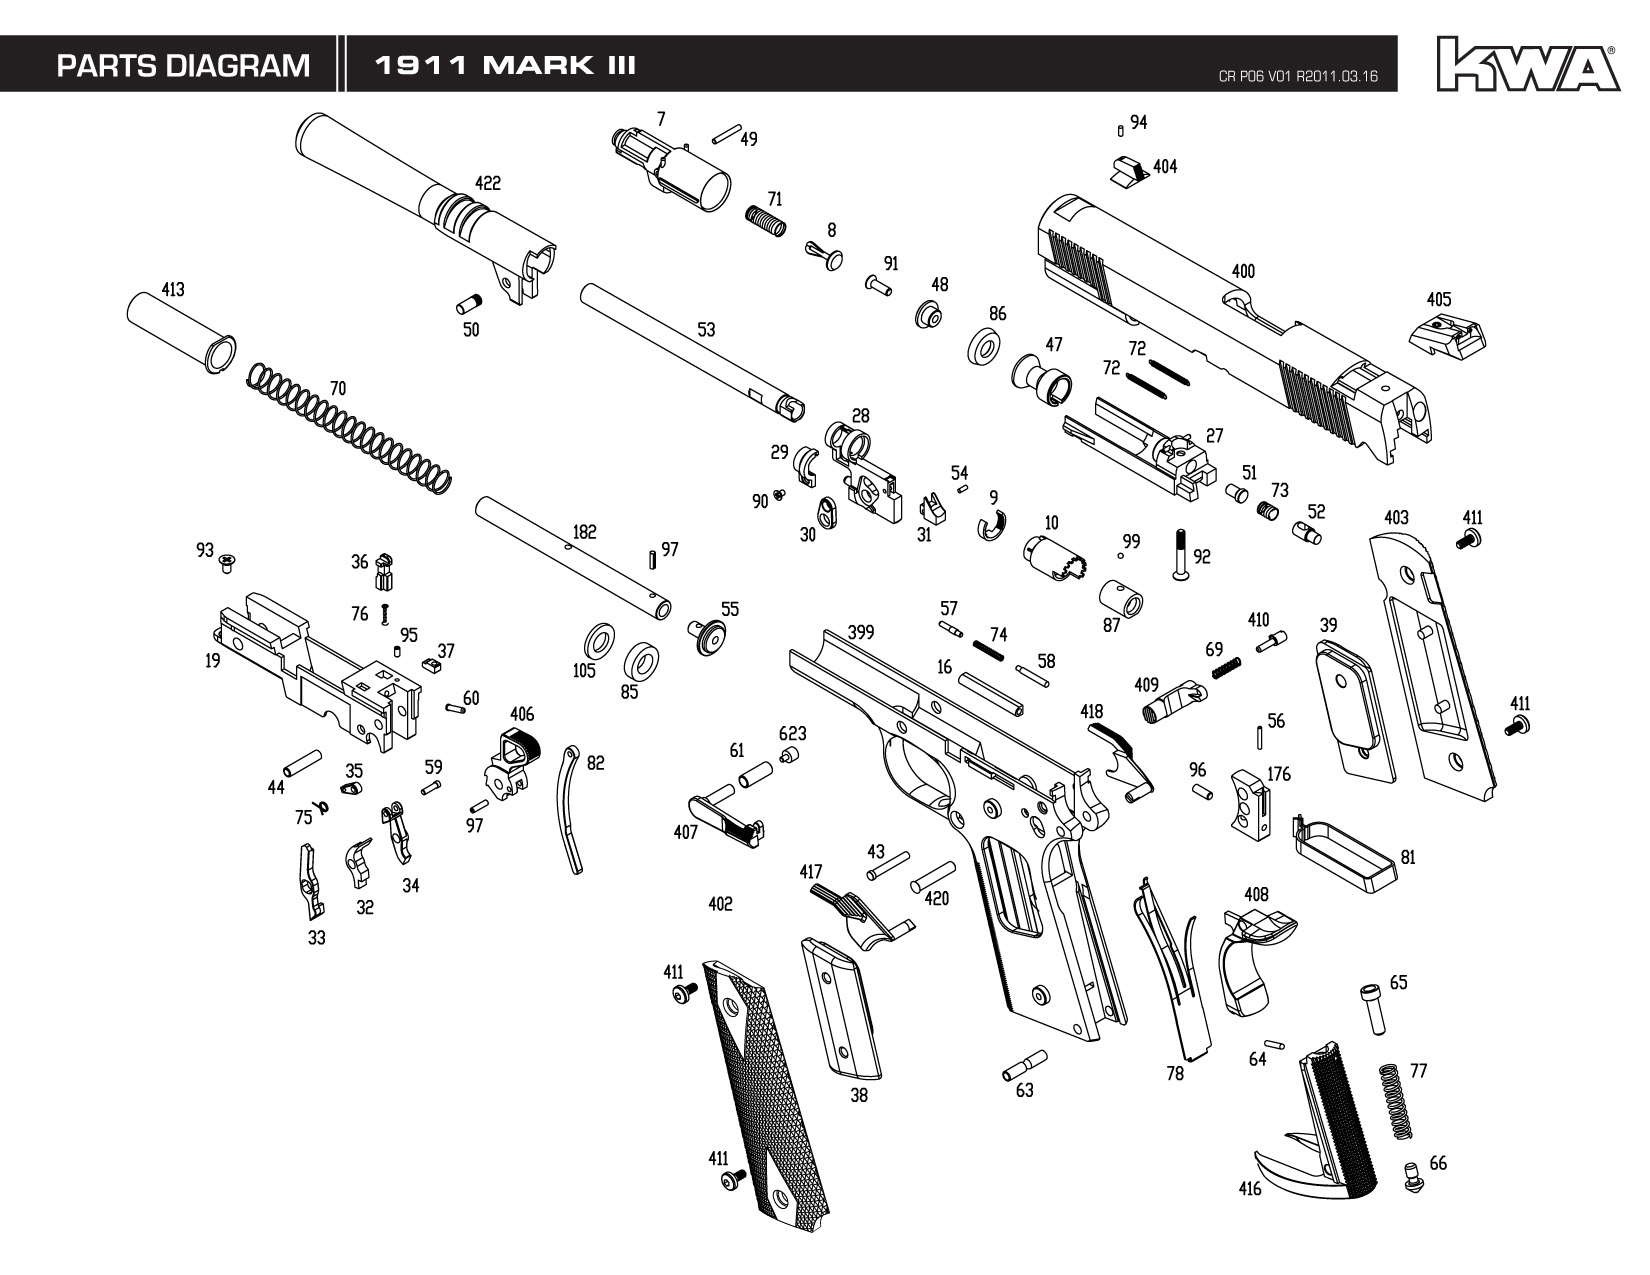 sig p226 diagram  sig  free engine image for user manual